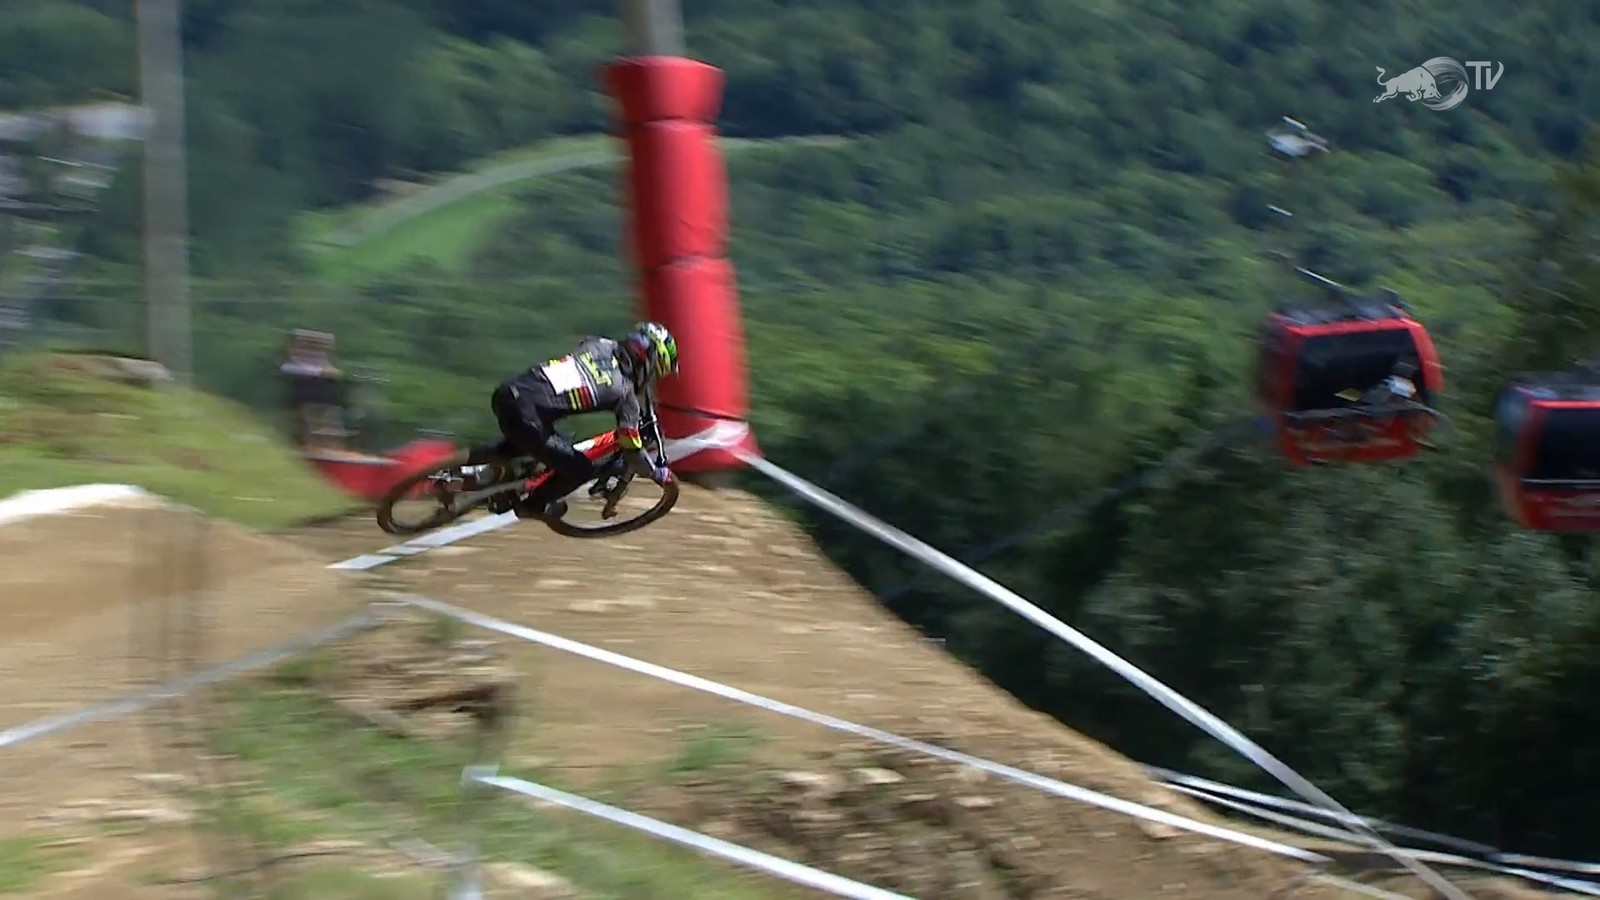 Qualifying Action from Mont-Sainte-Anne